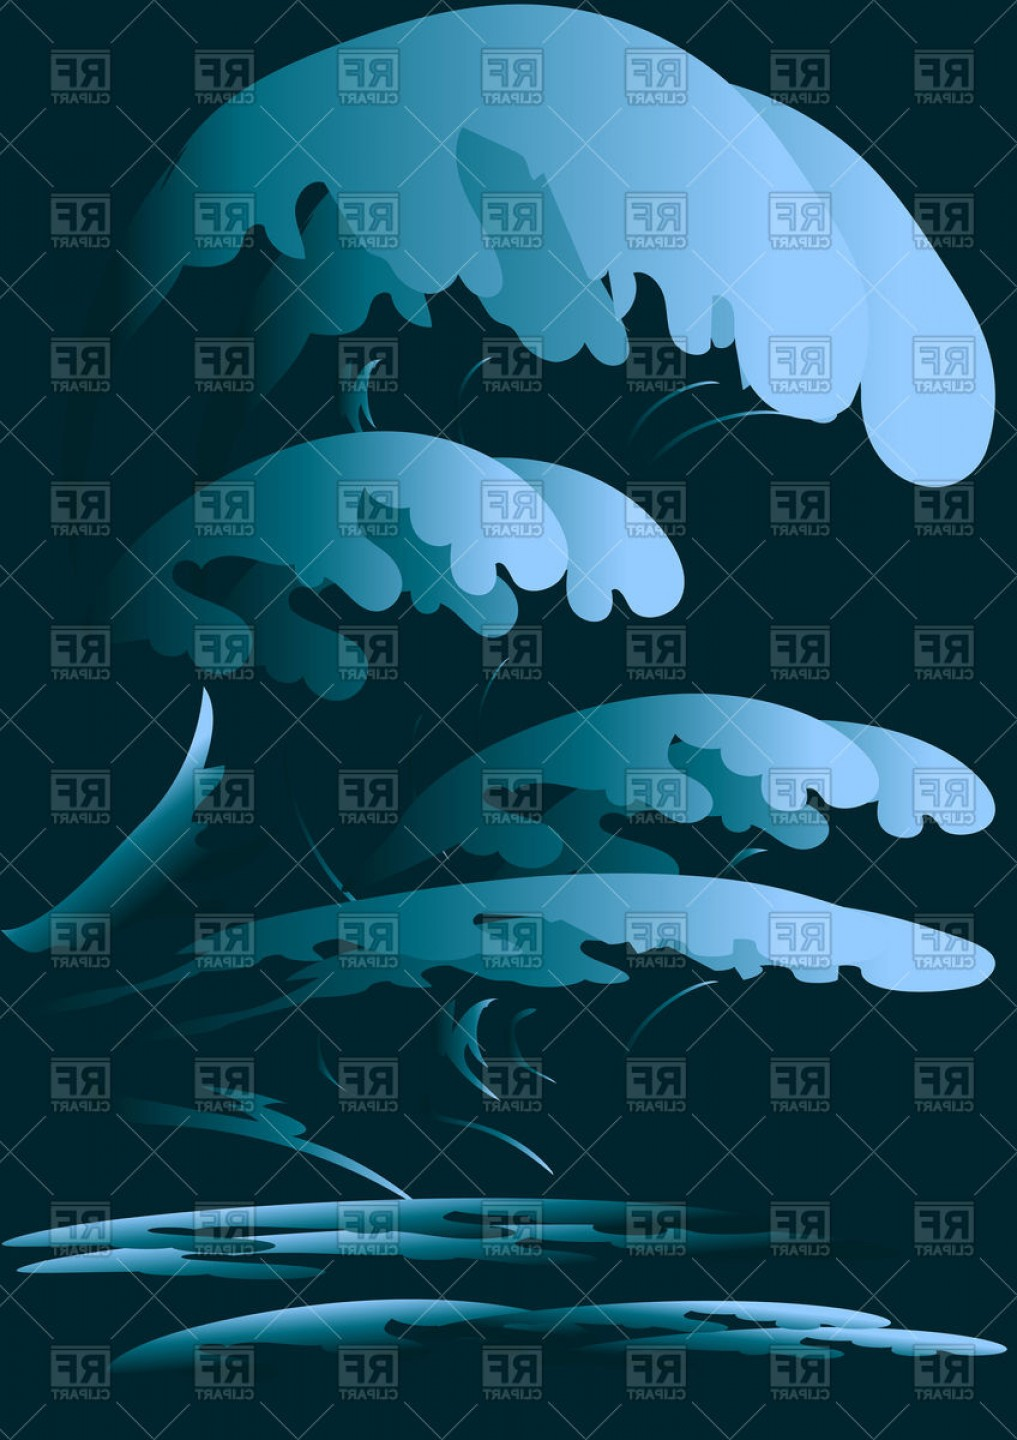 Ocean storm clipart graphic freeuse stock Night Sea Or Ocean Storm With Large Waves Vector Clipart | SOIDERGI graphic freeuse stock